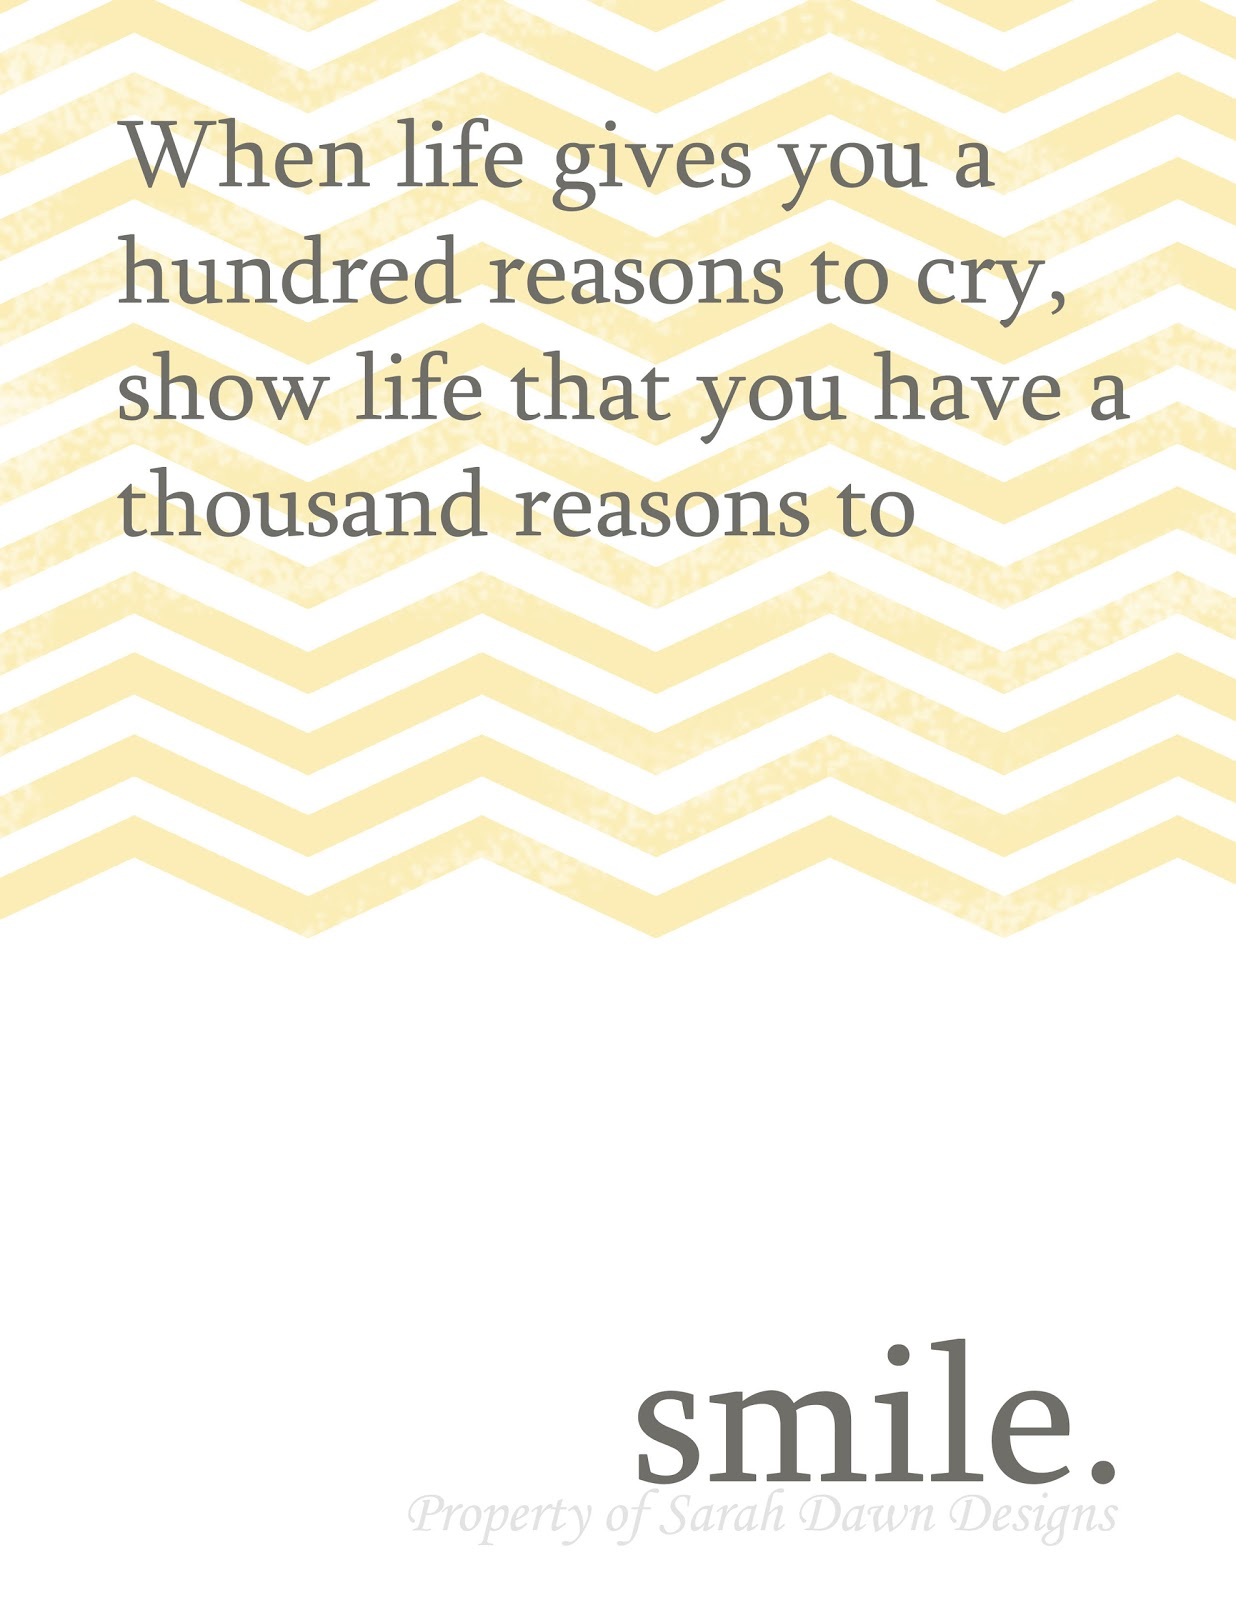 Quotes You Make Me Smile Sarah Dawn Designs Printable Quotes To Make You Smile